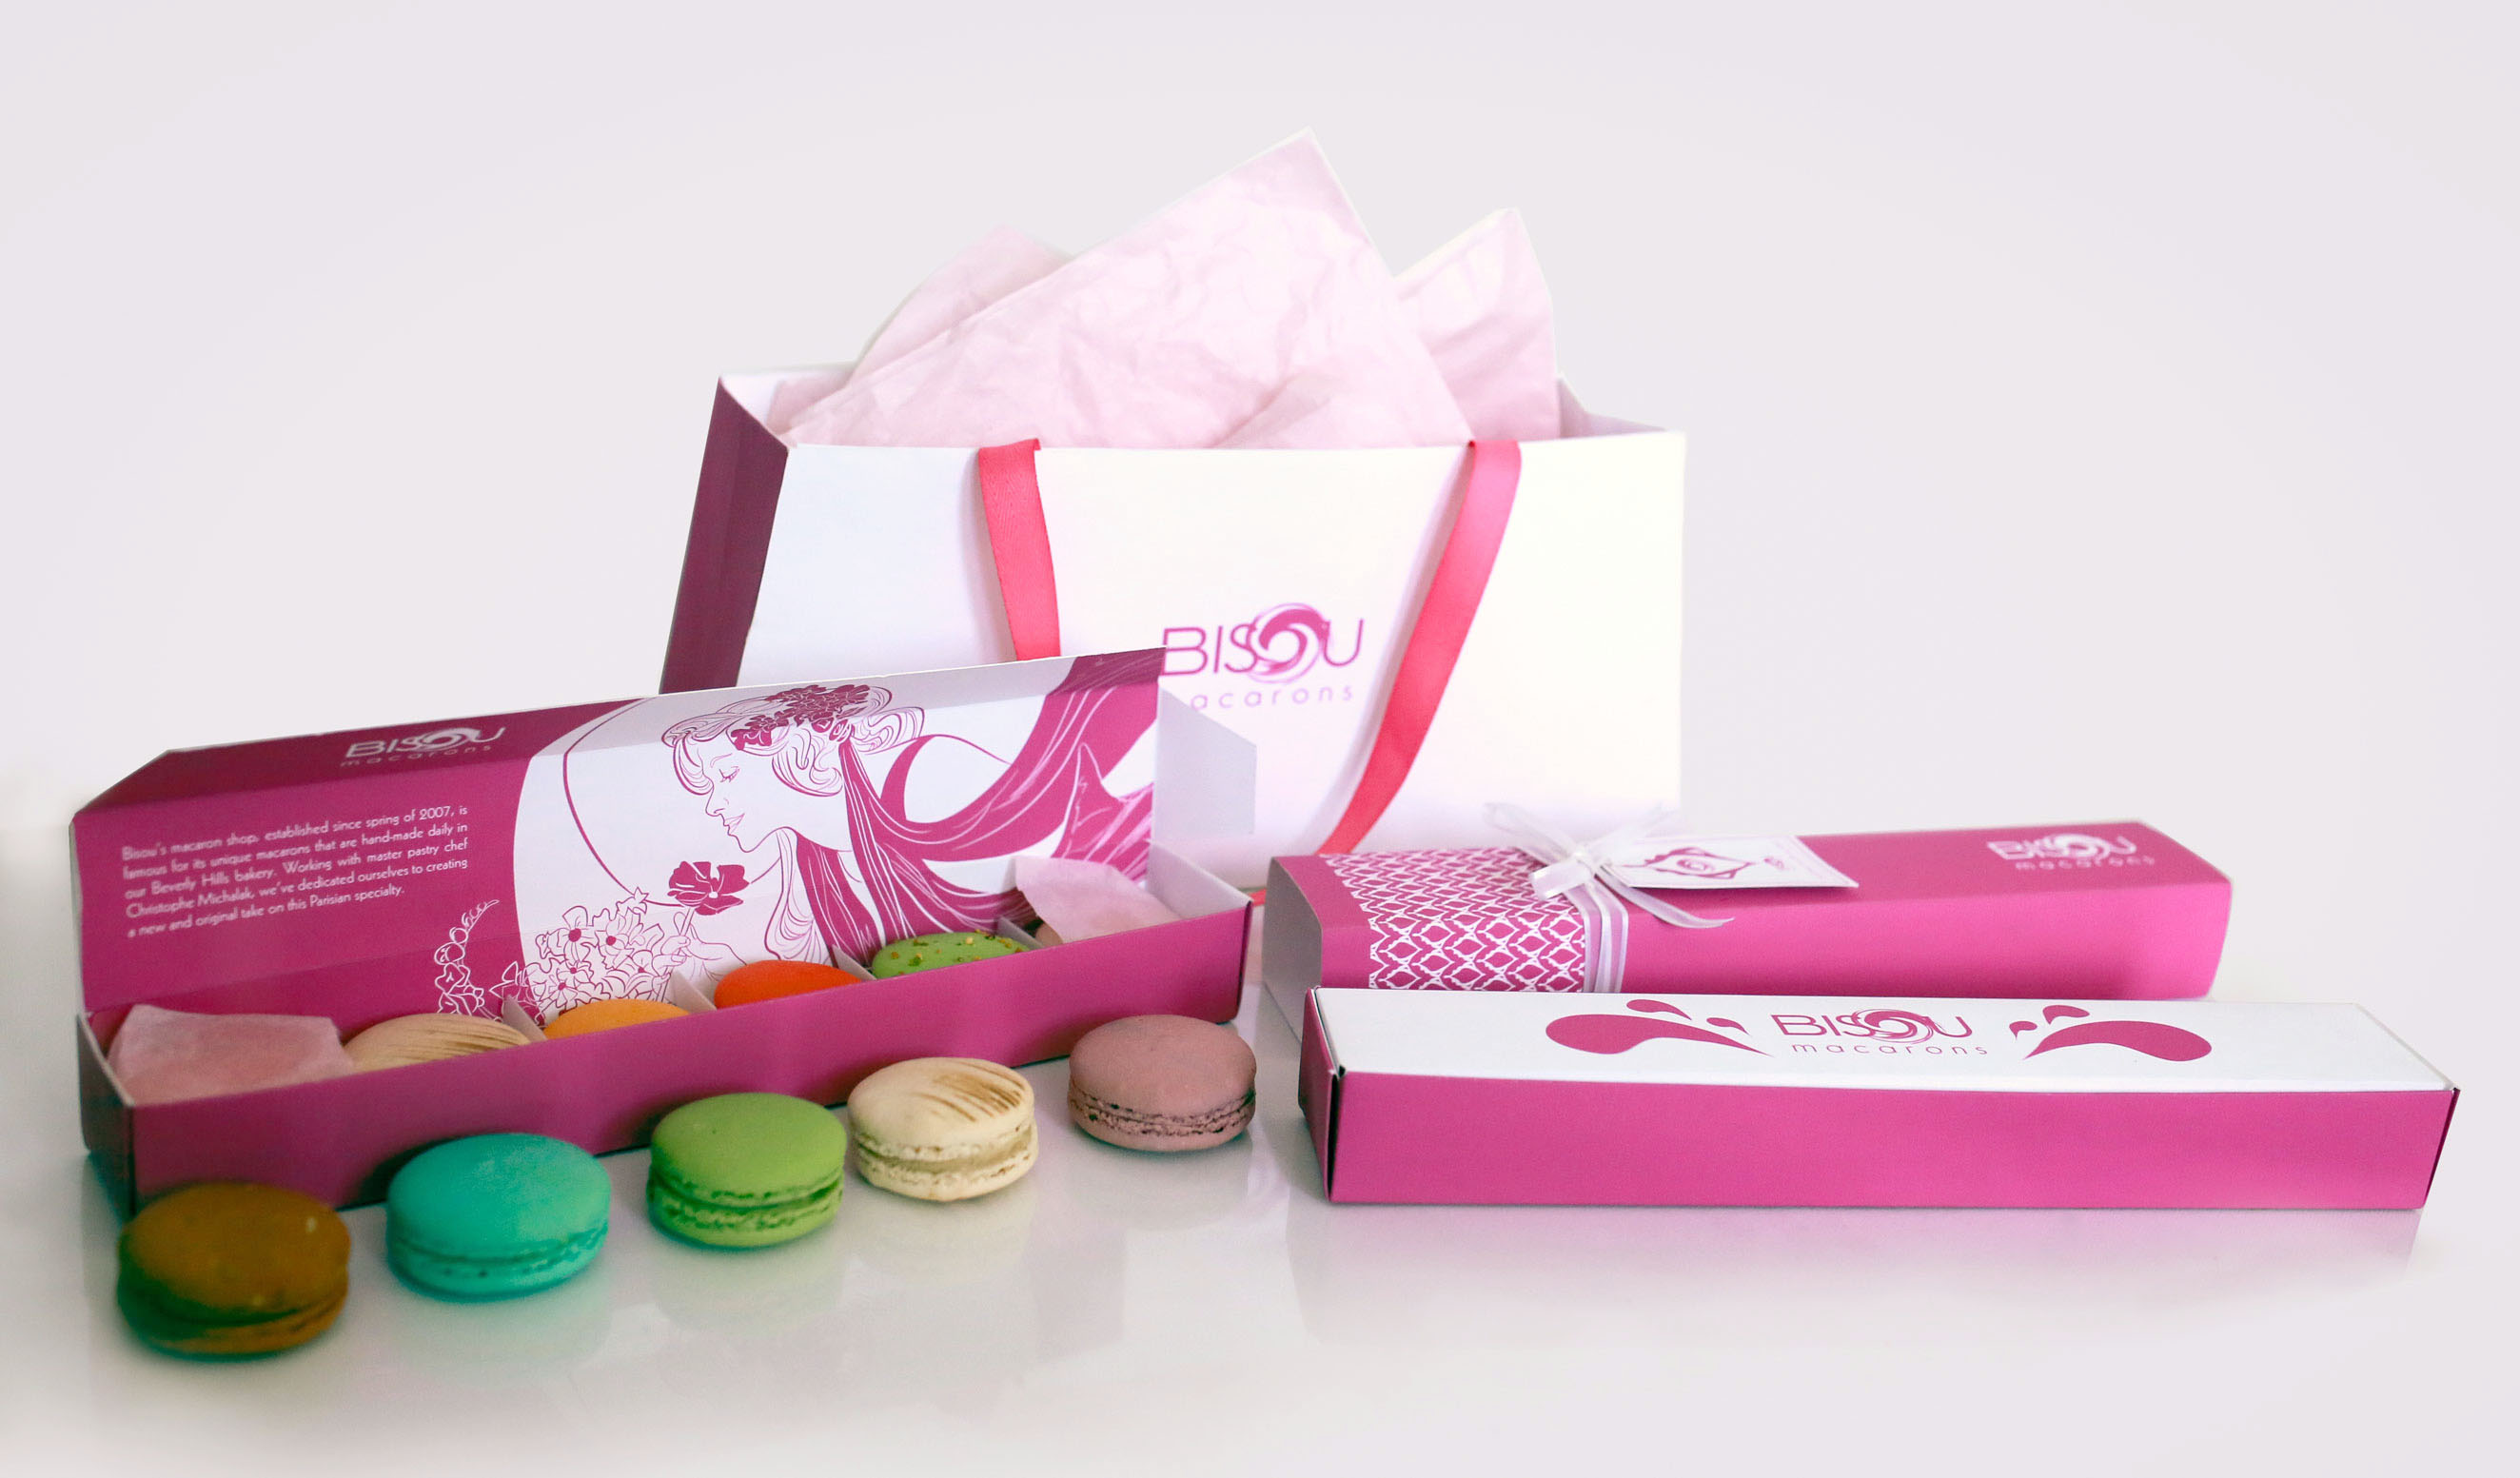 Packaging For Macarons Bisou macarons packaging rachel felsinger portfolio of the word spring since it not only highlights when the bakery was established but also the delightful colors of the various flavors of the macarons sisterspd